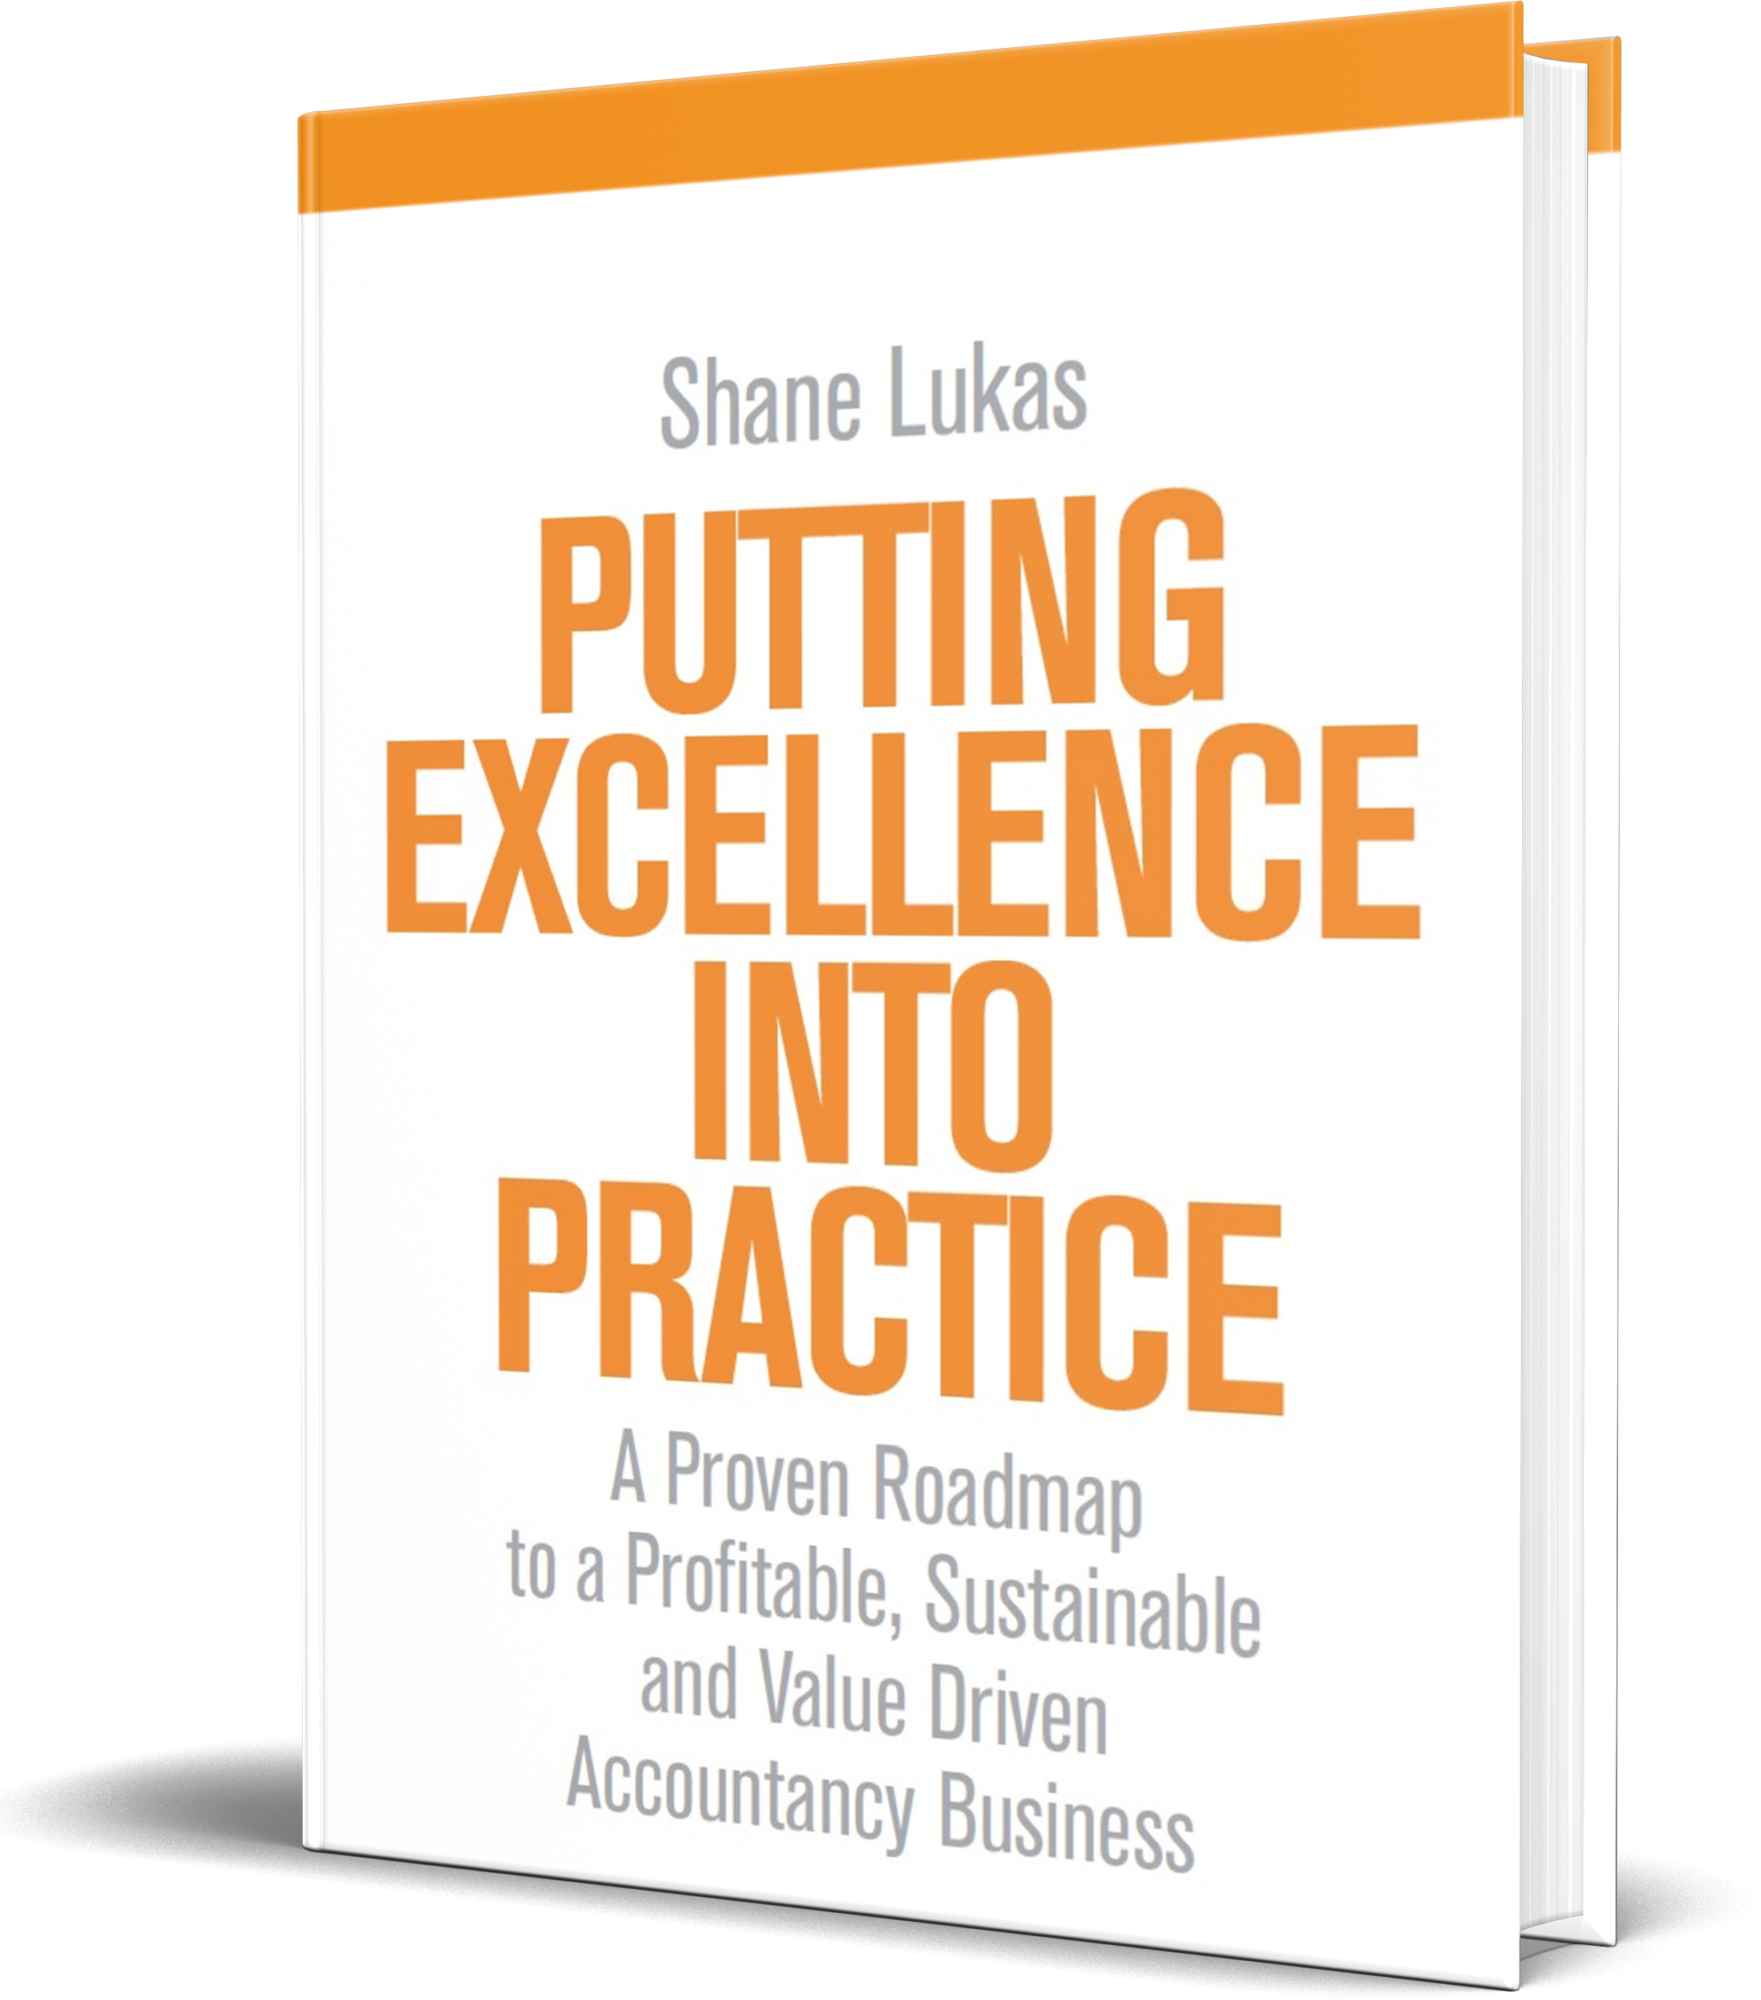 Shane Lukas Putting Excellence Into Practice